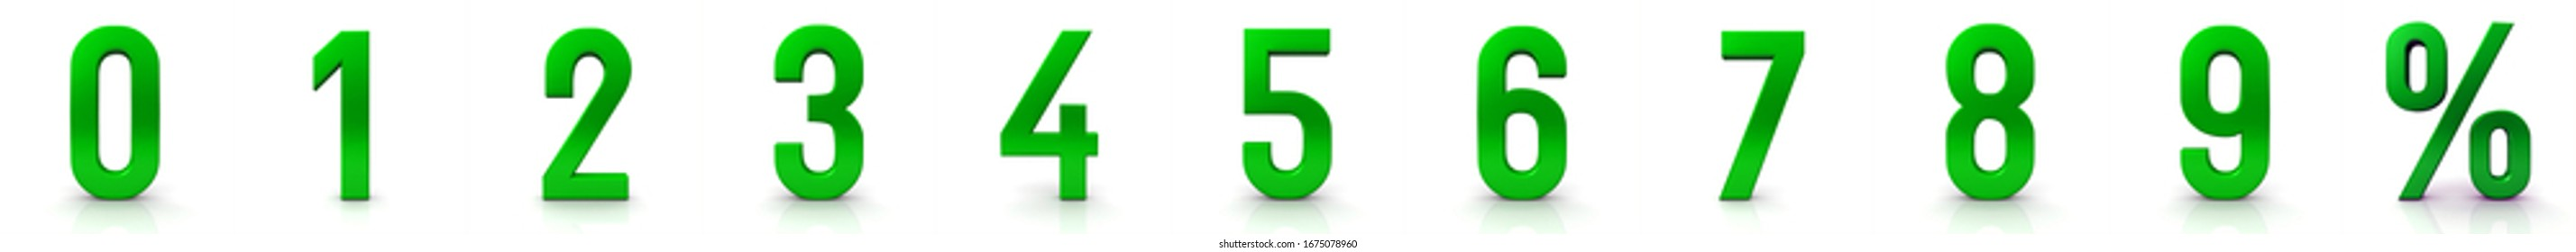 Numbers 3d green 0 1 2 3 4 5 6 7 8 9 percent sign percentage symbol percentile icon 3d rendering illustration